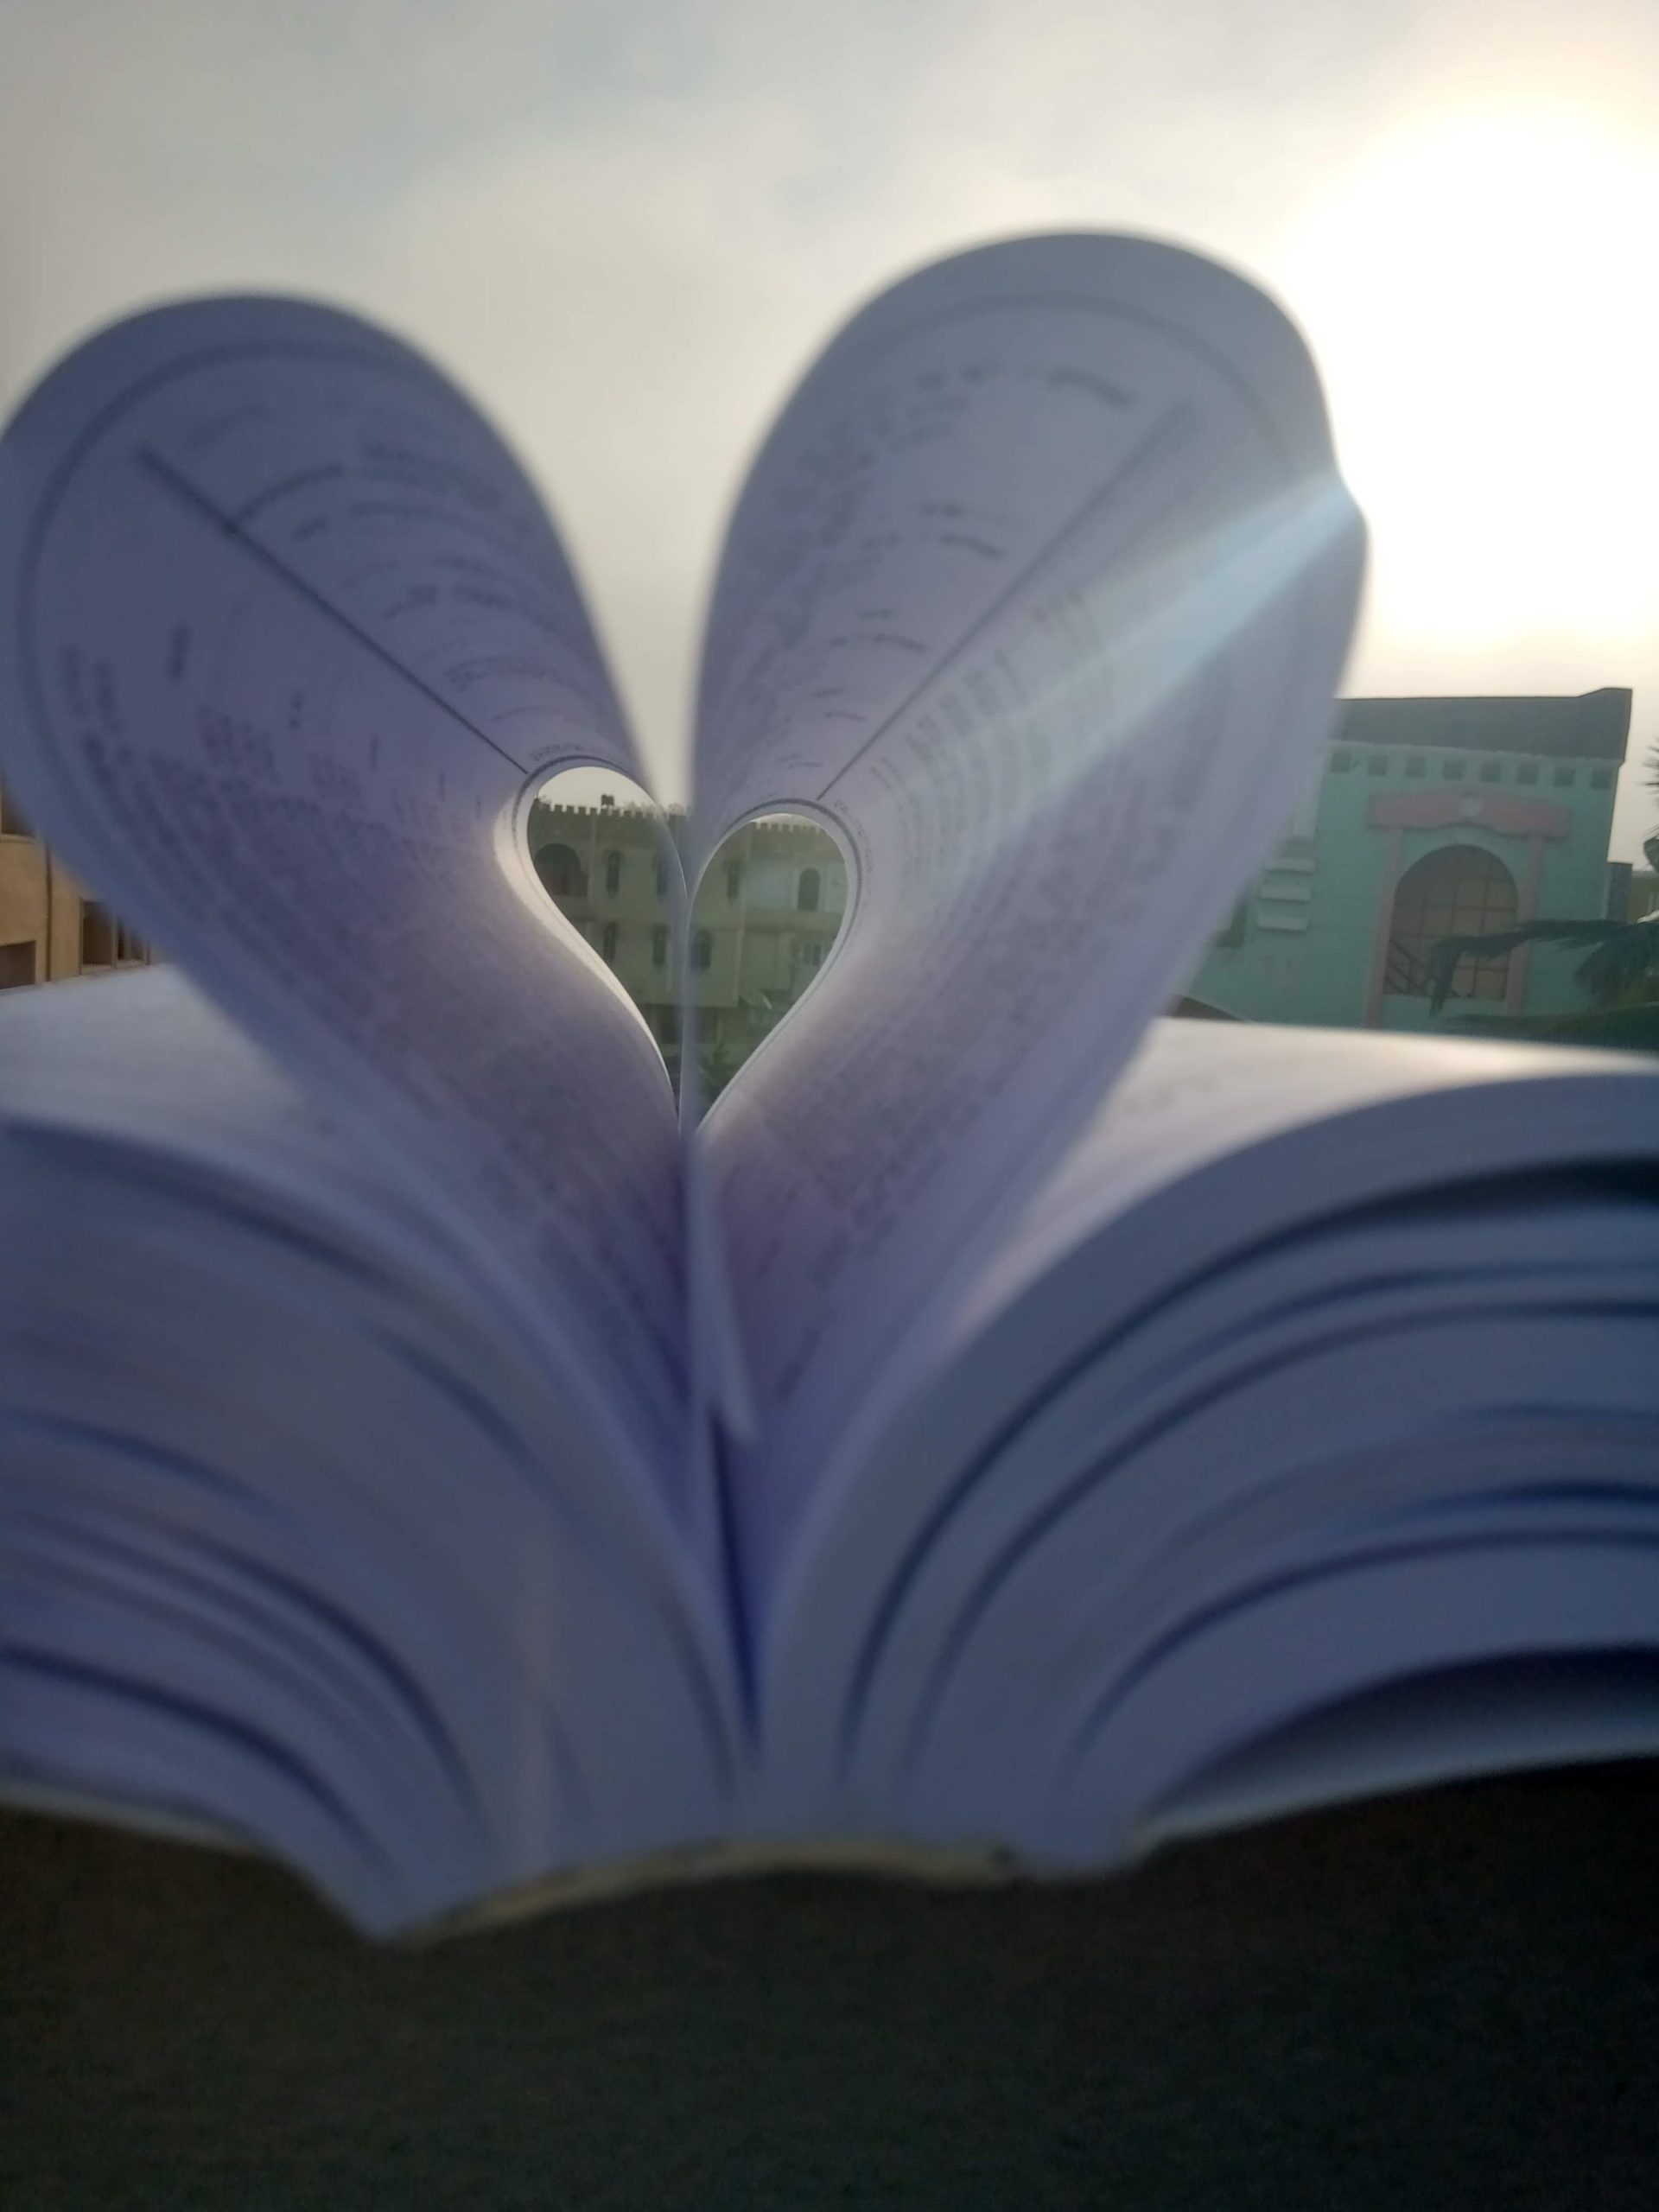 A heart shape made with book pages